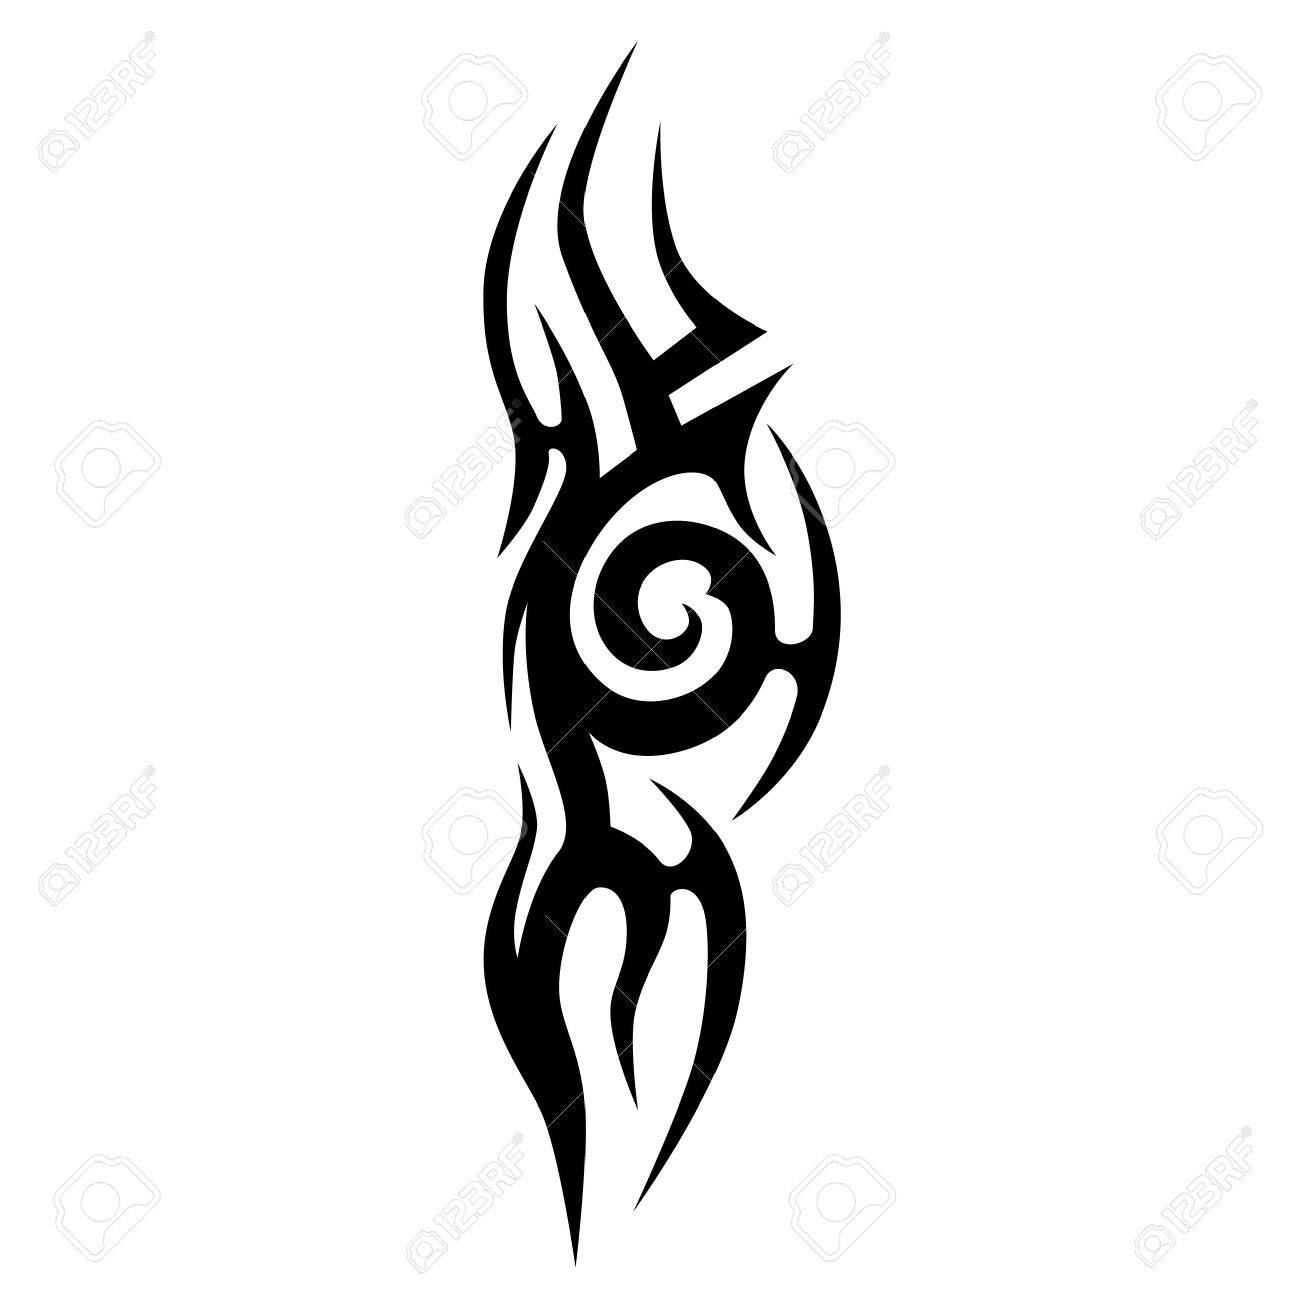 Scroll tattoo tribal vector designs. Tribal tattoos. Art tribal..